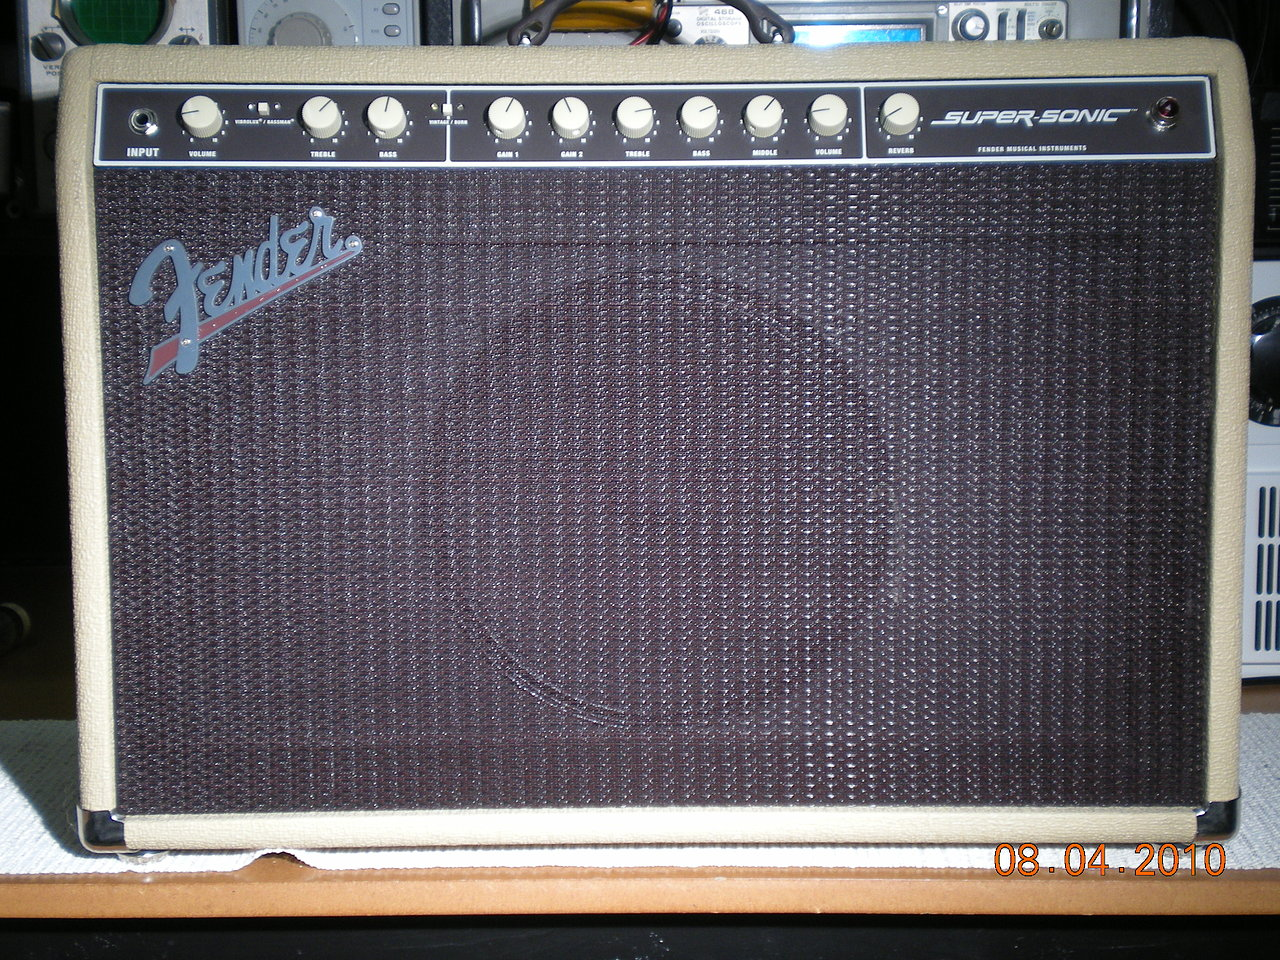 Fender+Super+Sonic+repair.JPG